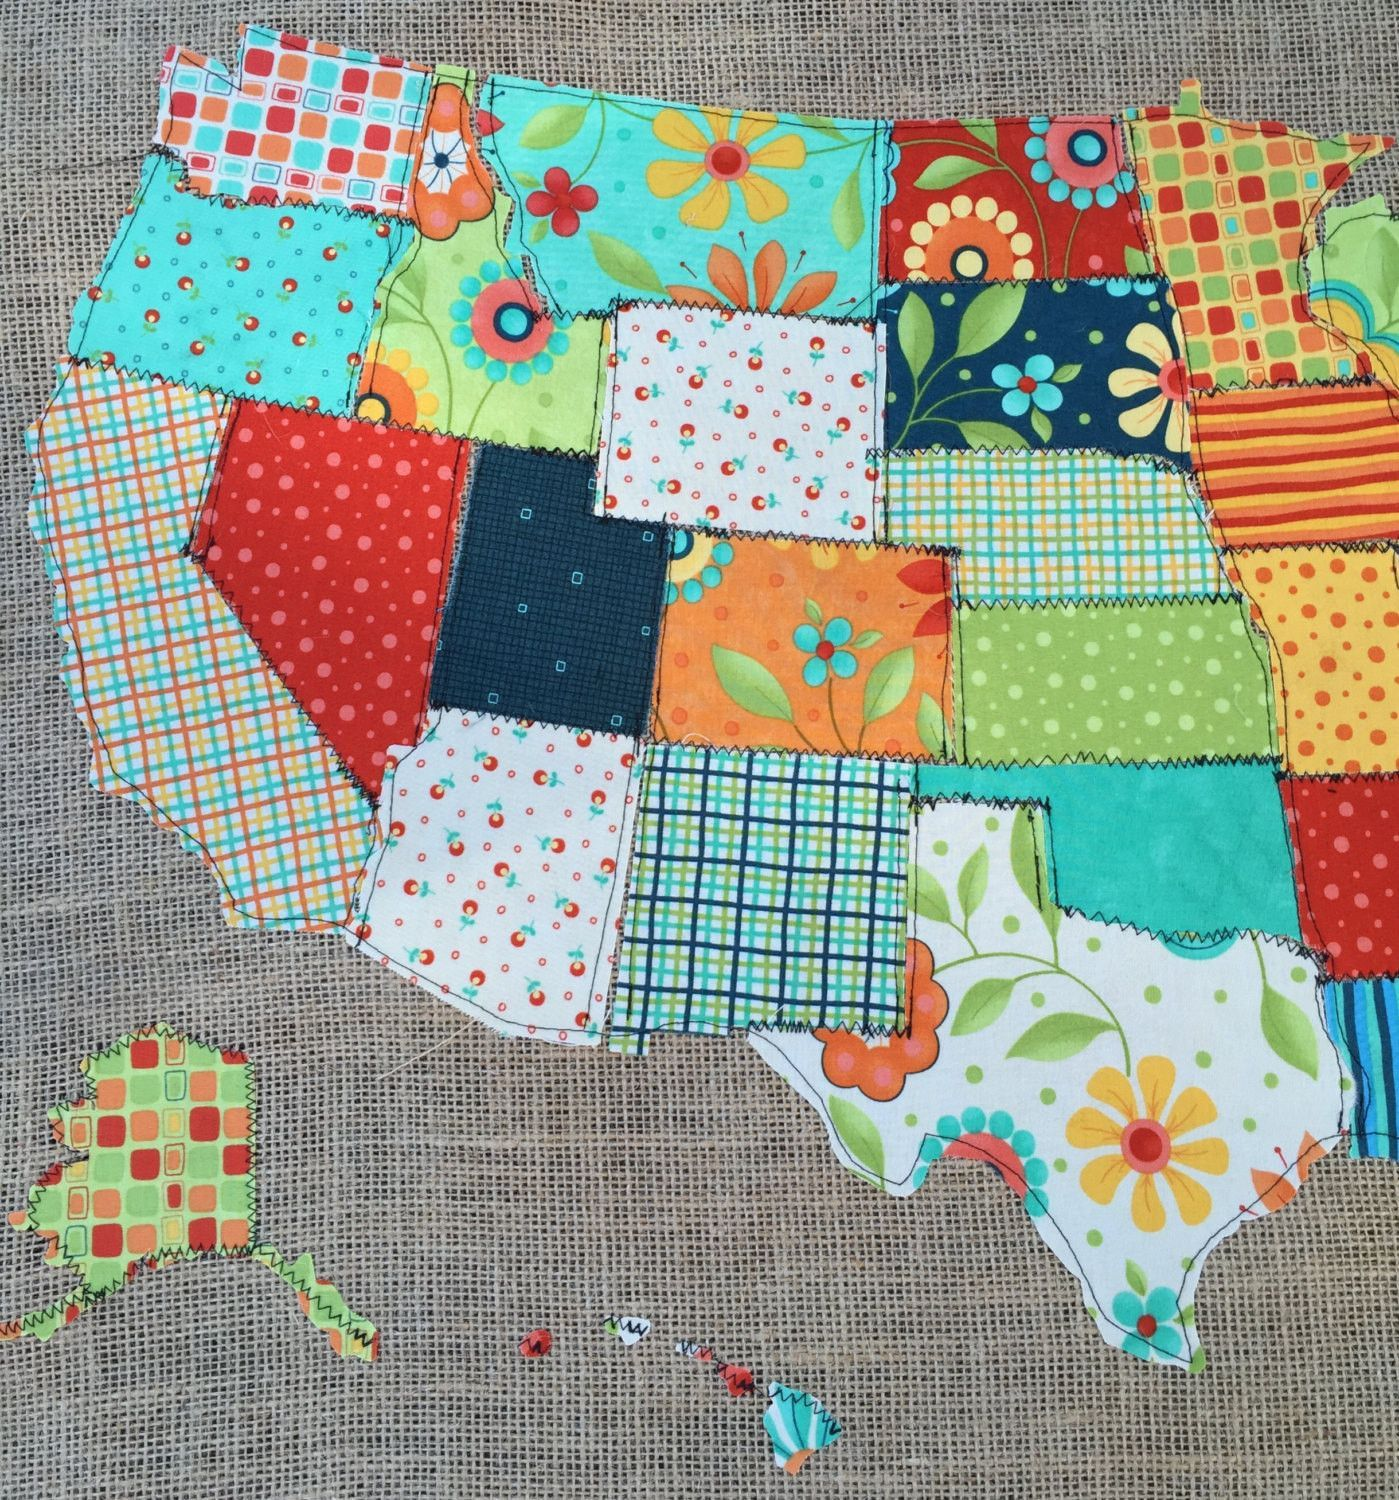 This stunning scrap map is a fabric map of the united states quilted this stunning scrap map is a fabric map of the united states quilted on burlap gumiabroncs Image collections